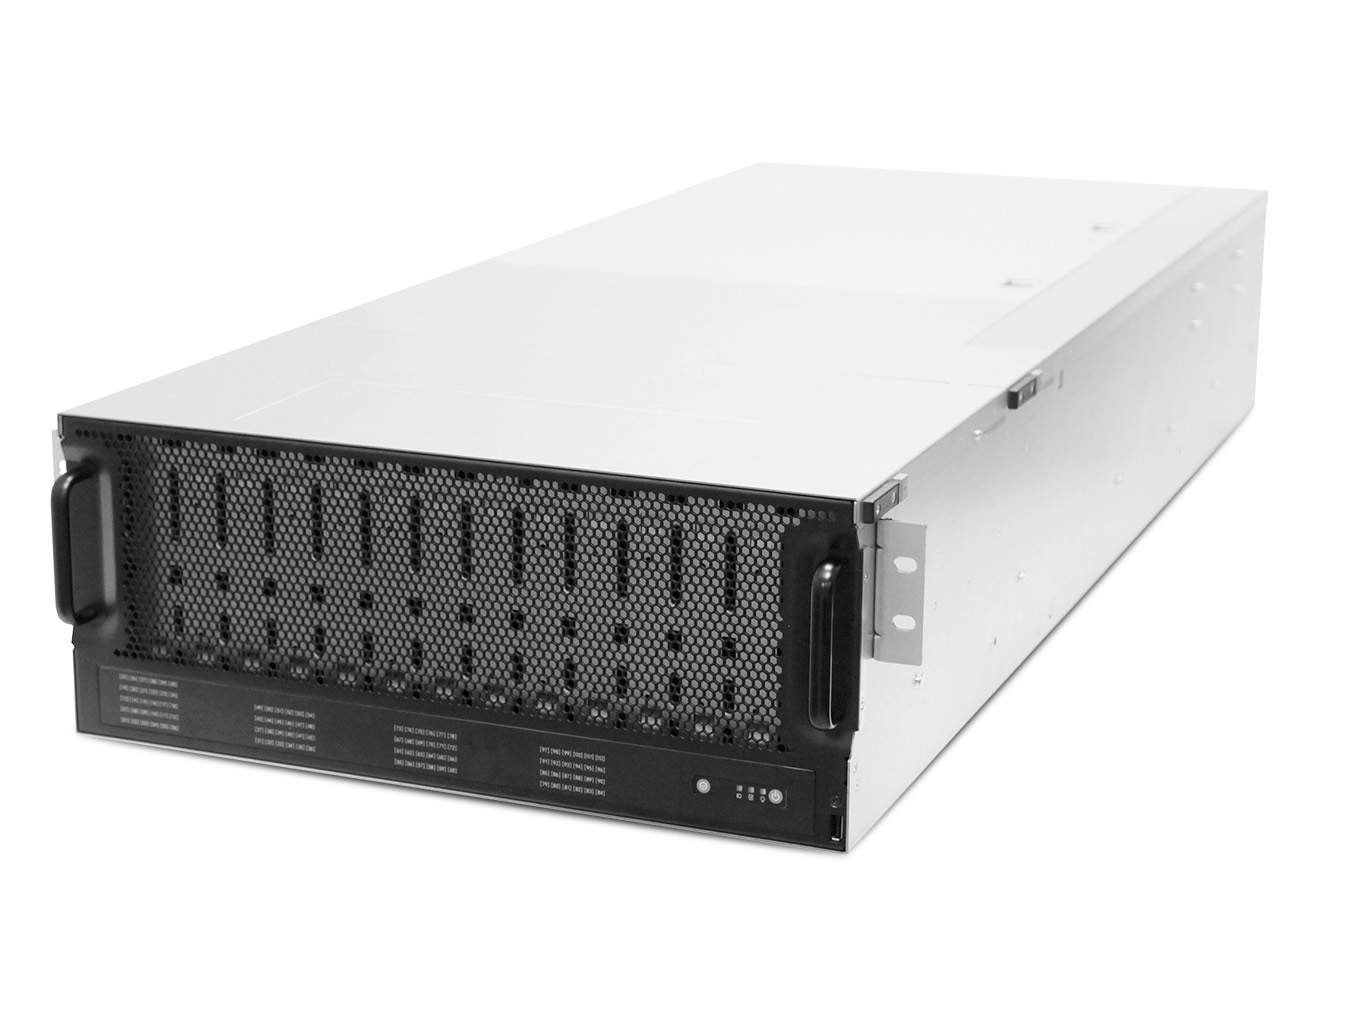 AIC SB405-PV XP1-S405PV01 4U 102-Bay Storage Server